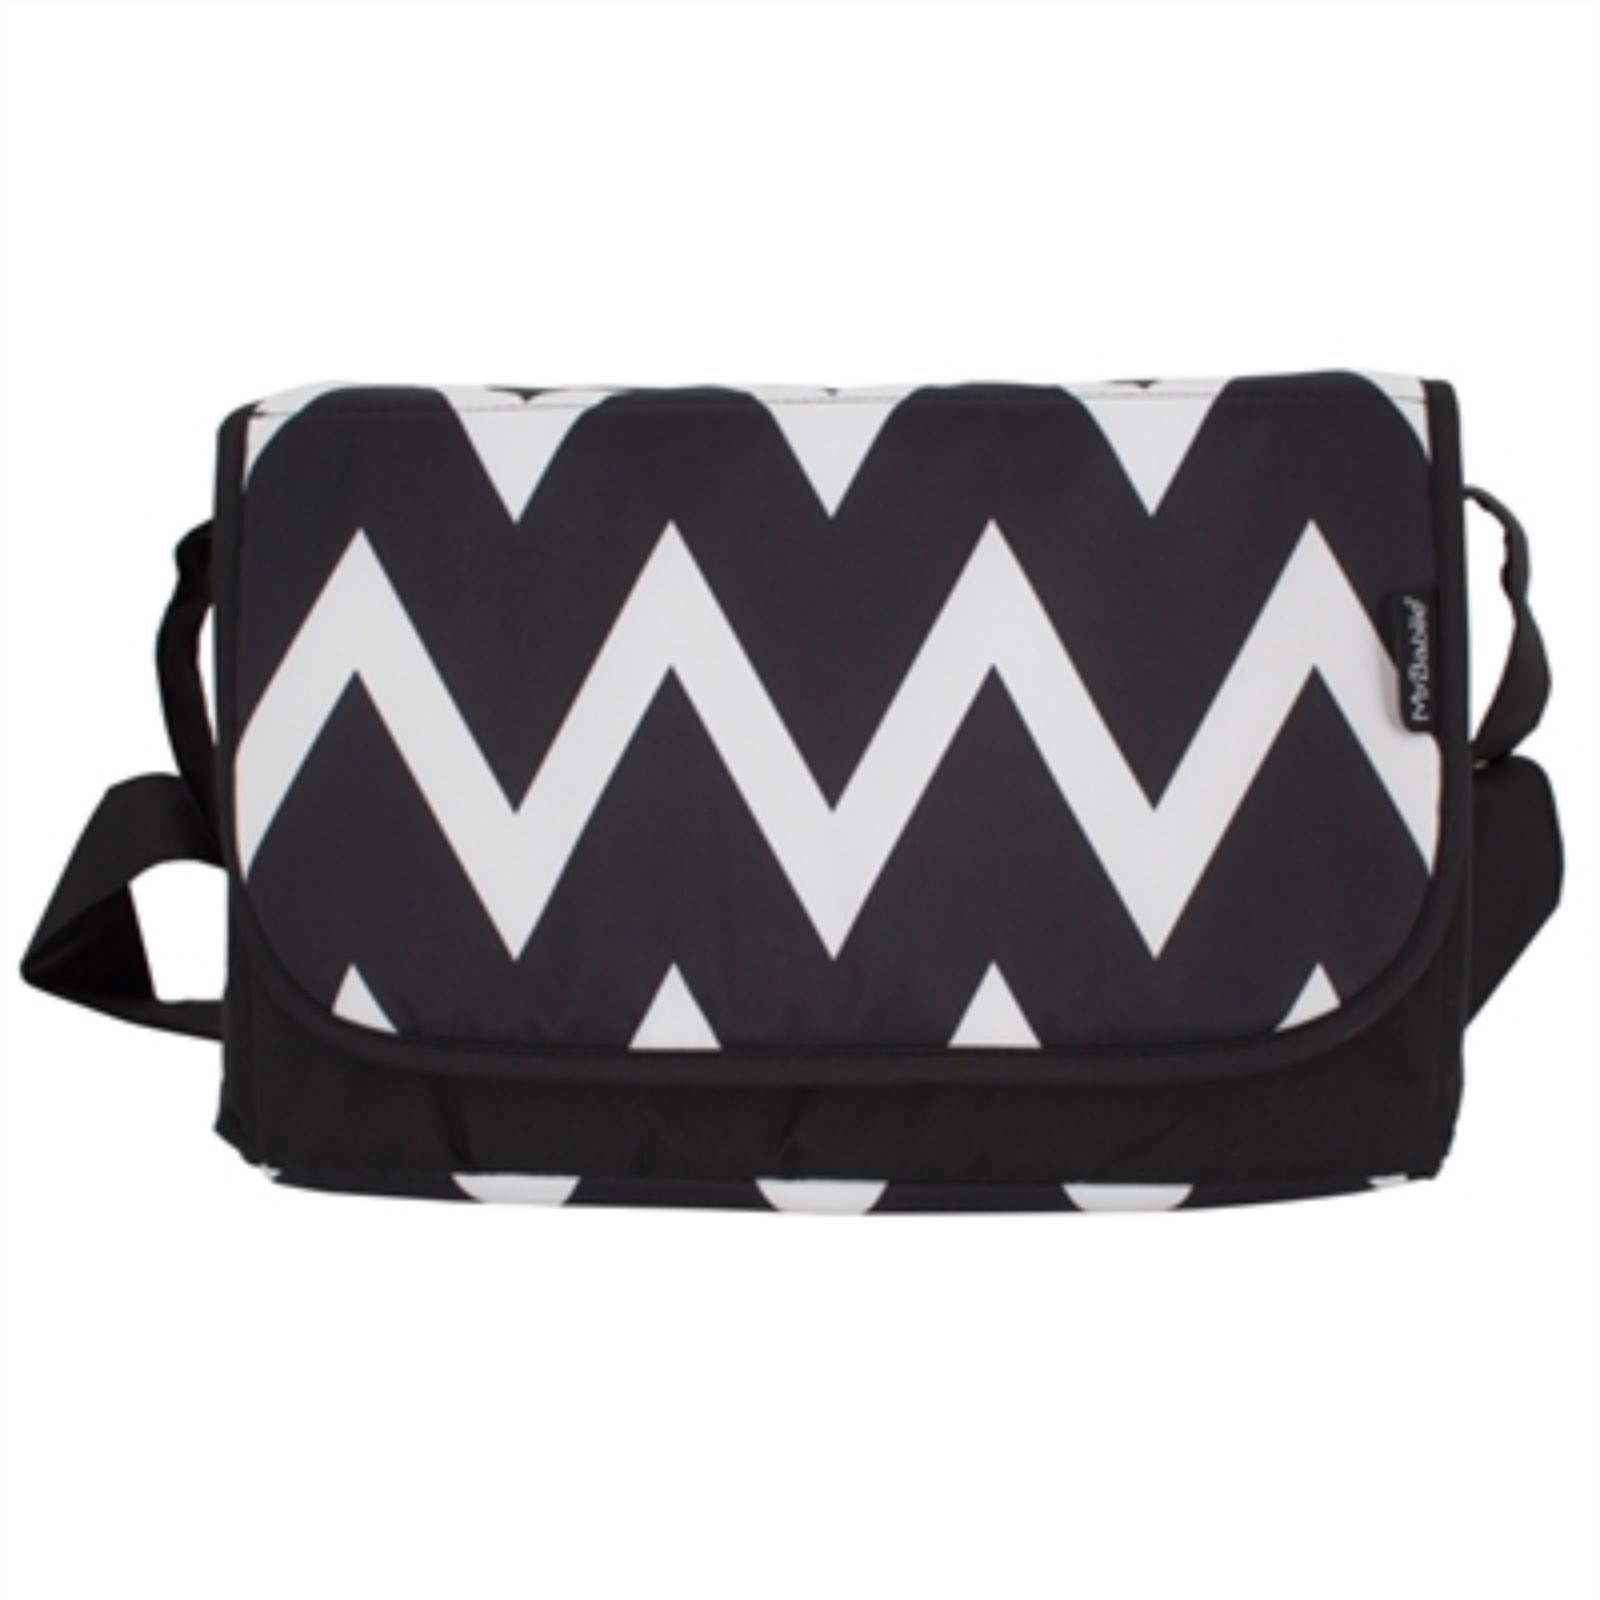 e59ca2d57d41a My Babiie Changing Bag - Black & White Chevron | Buy at Online4baby